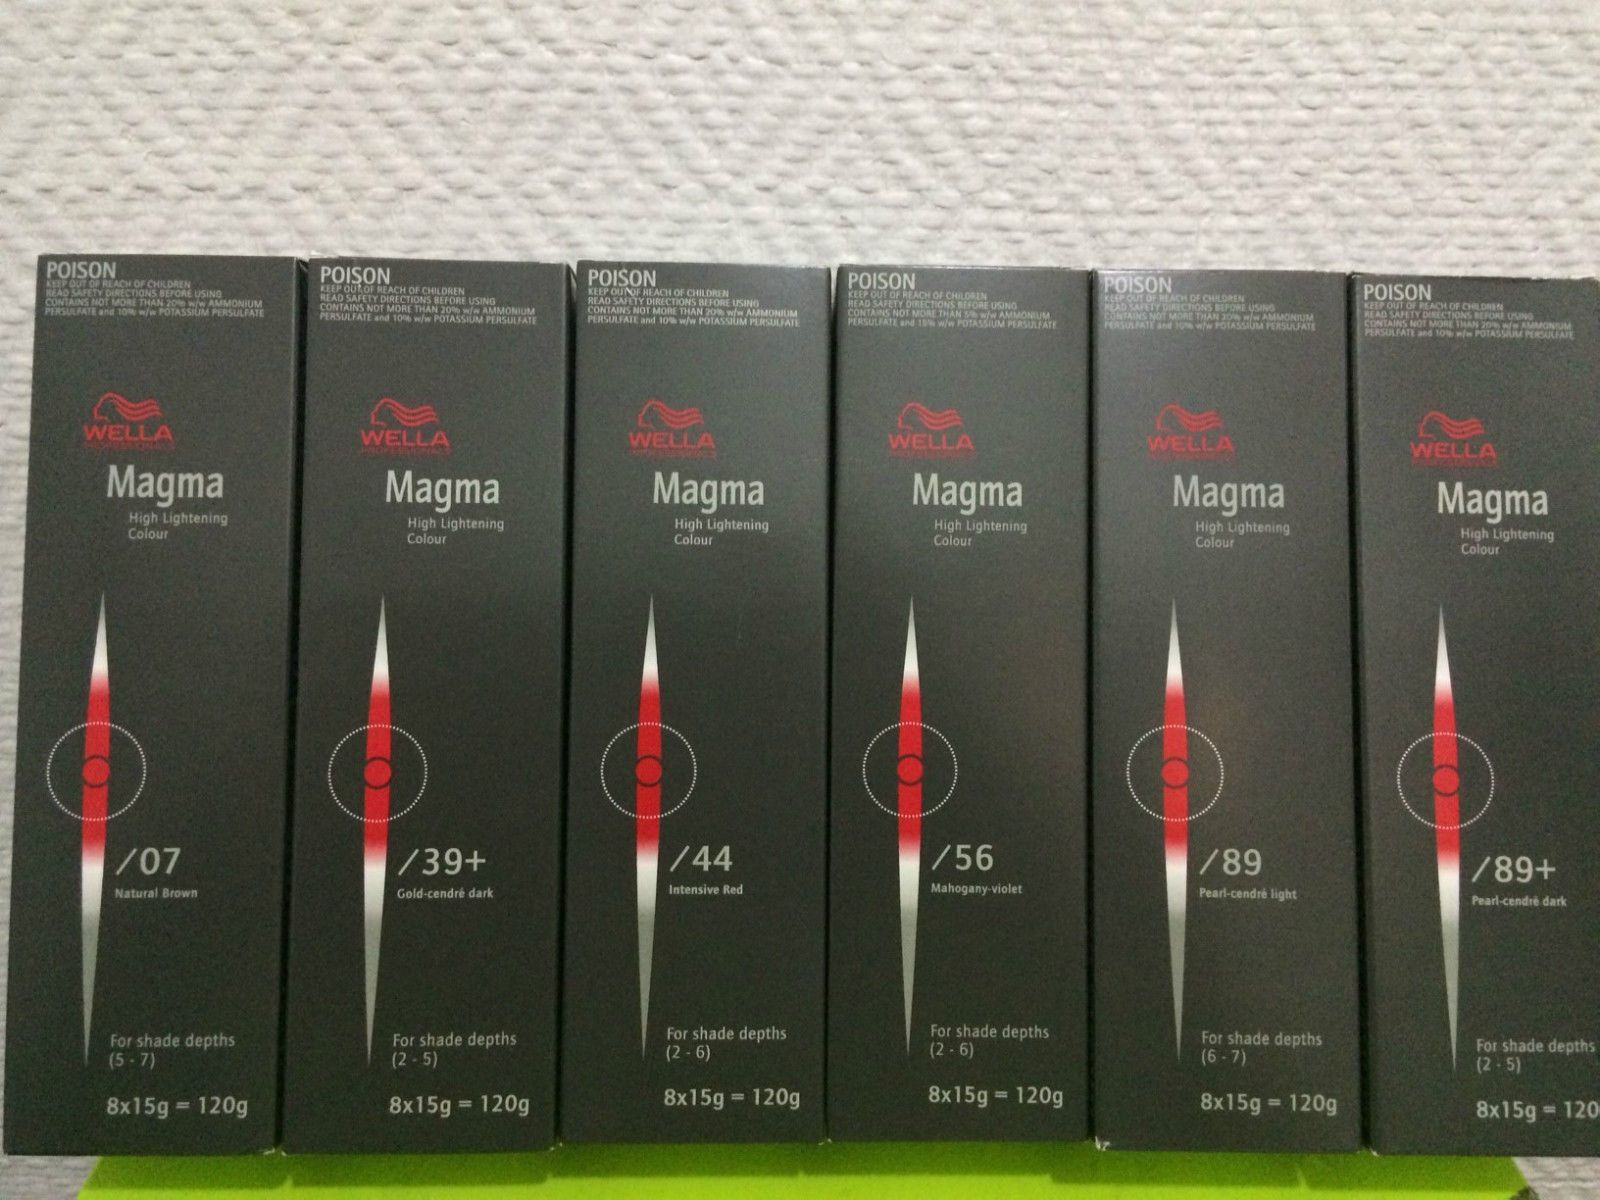 Wella magma high lightening colour choose quantity also best images ash brown beauty makeover makeup rh pinterest